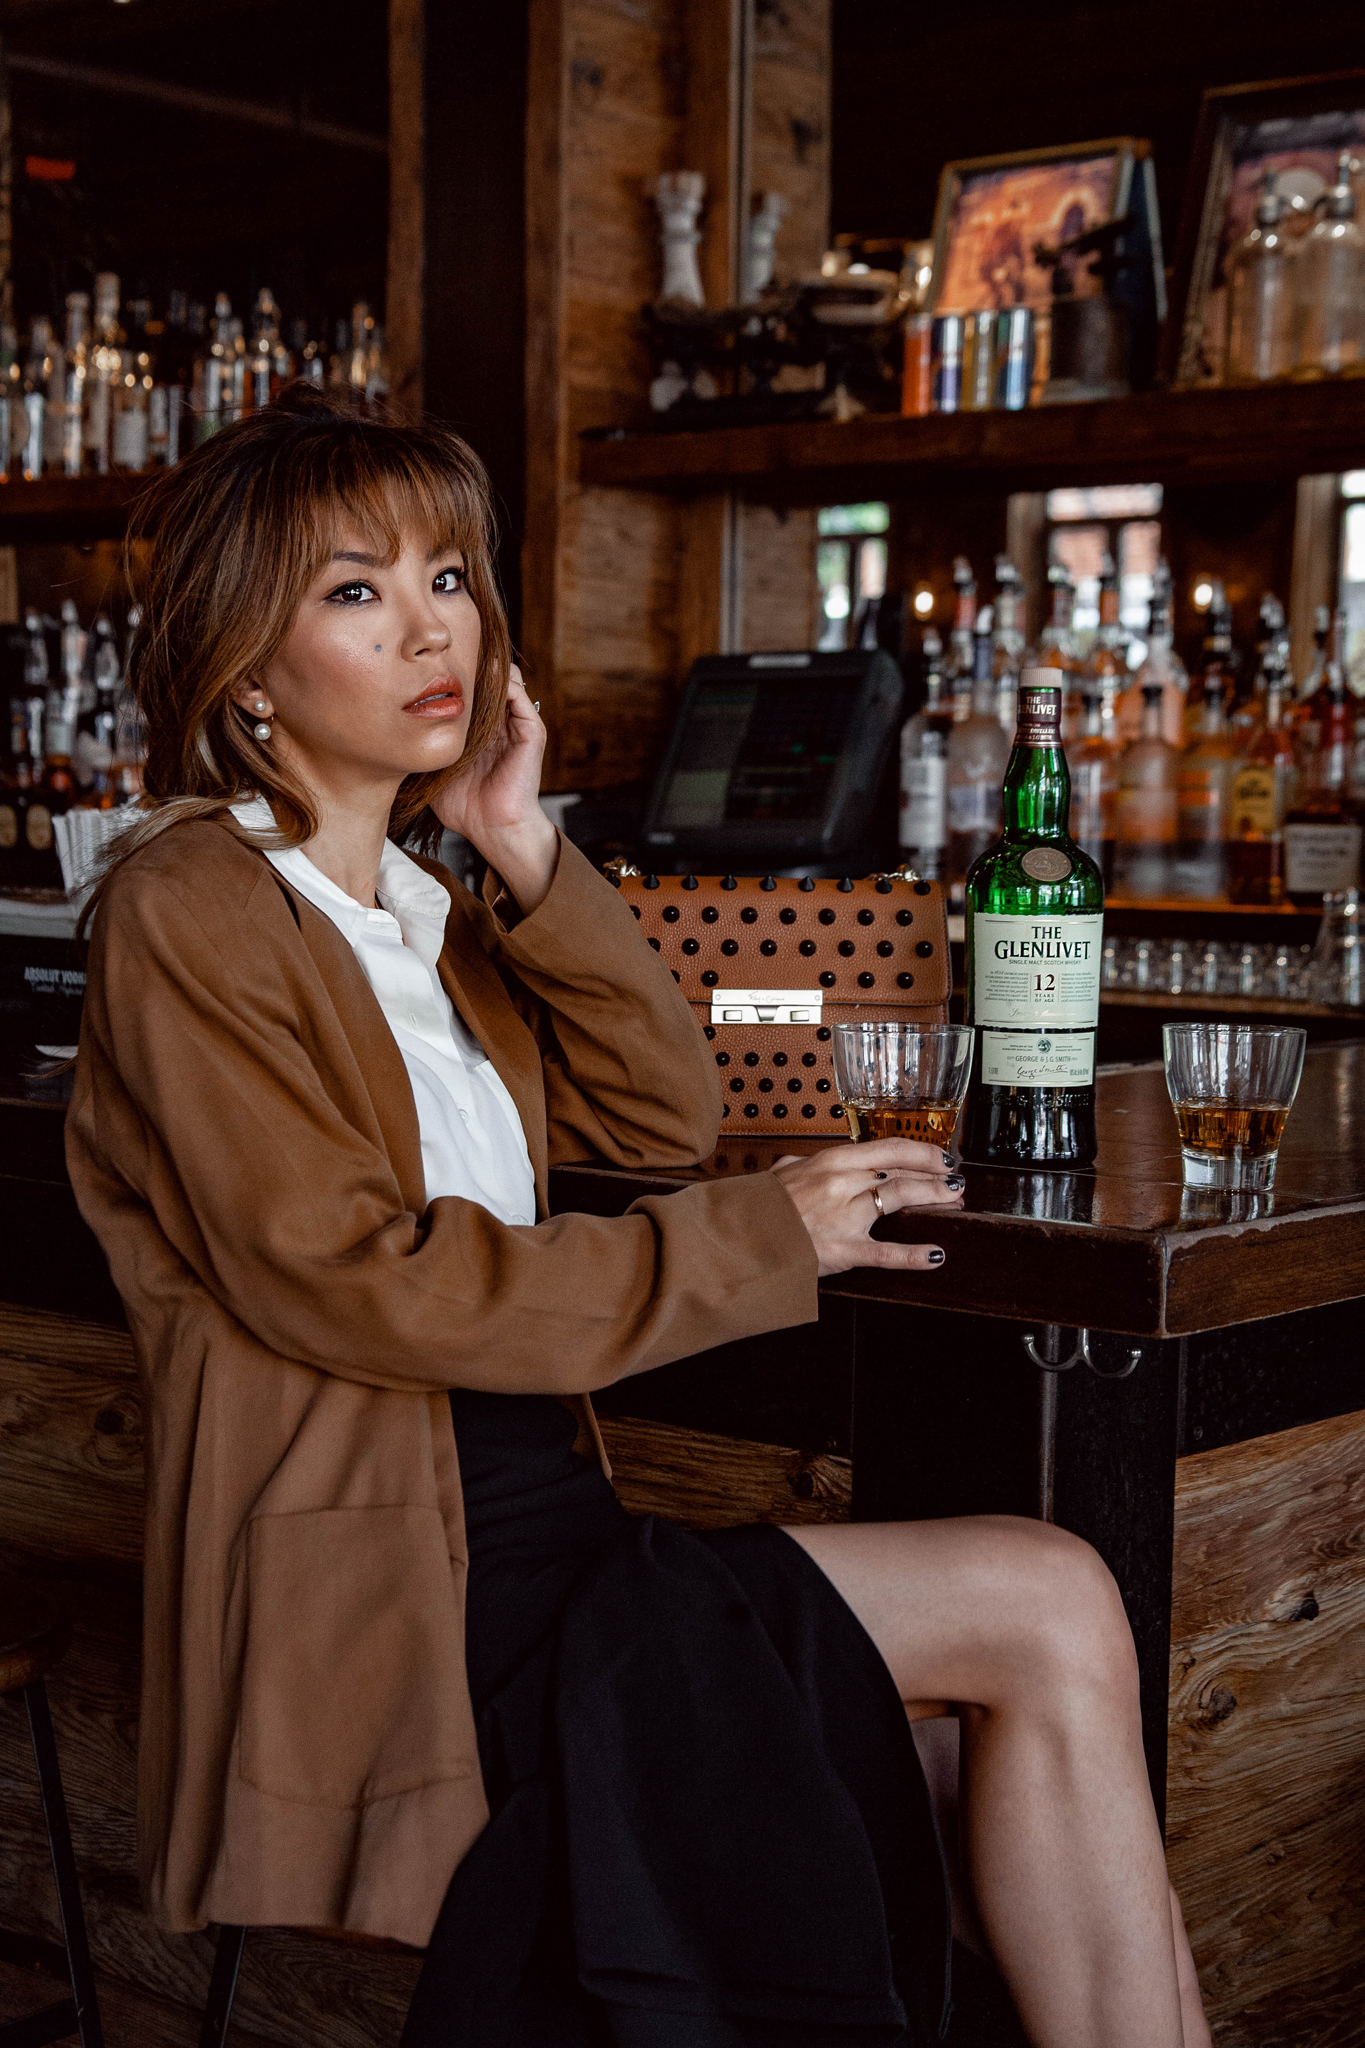 Cocktail hour girl